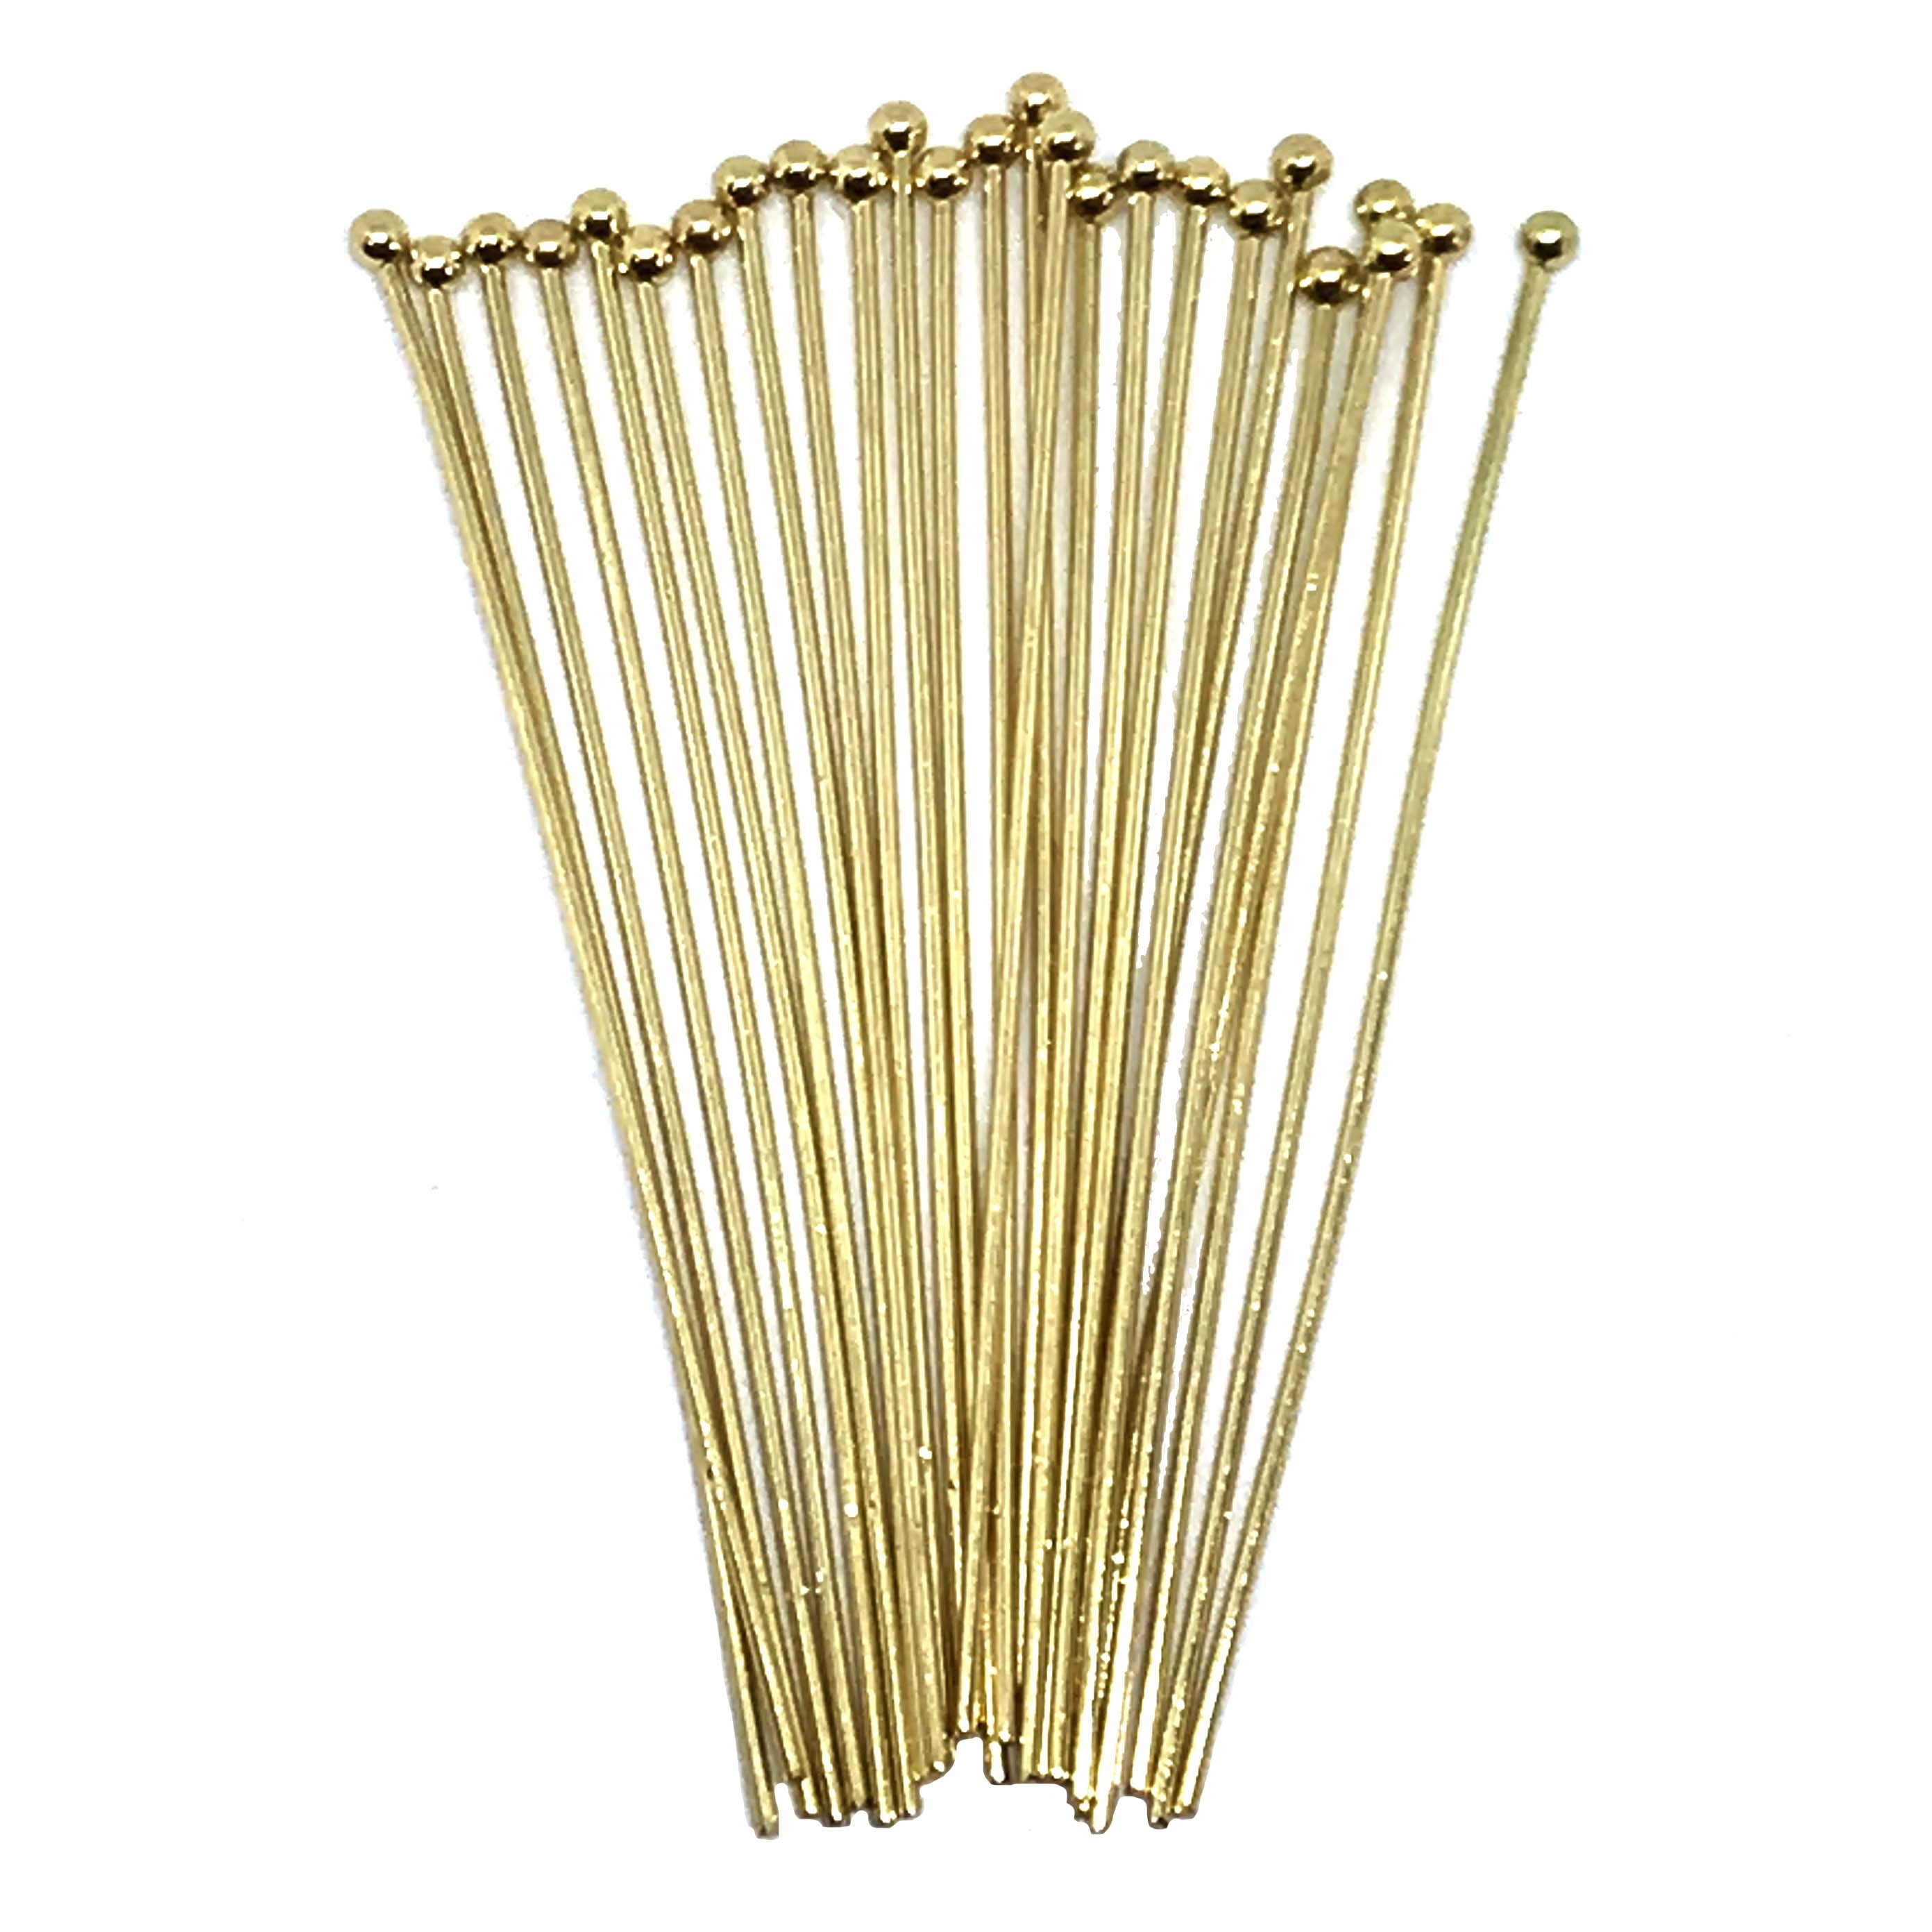 headpins, ball end head pins, jewelry making, medium weight head pins, standard size headpins, beading supplies, jewelry supplies, gold plate head pins, antique gold, 01626